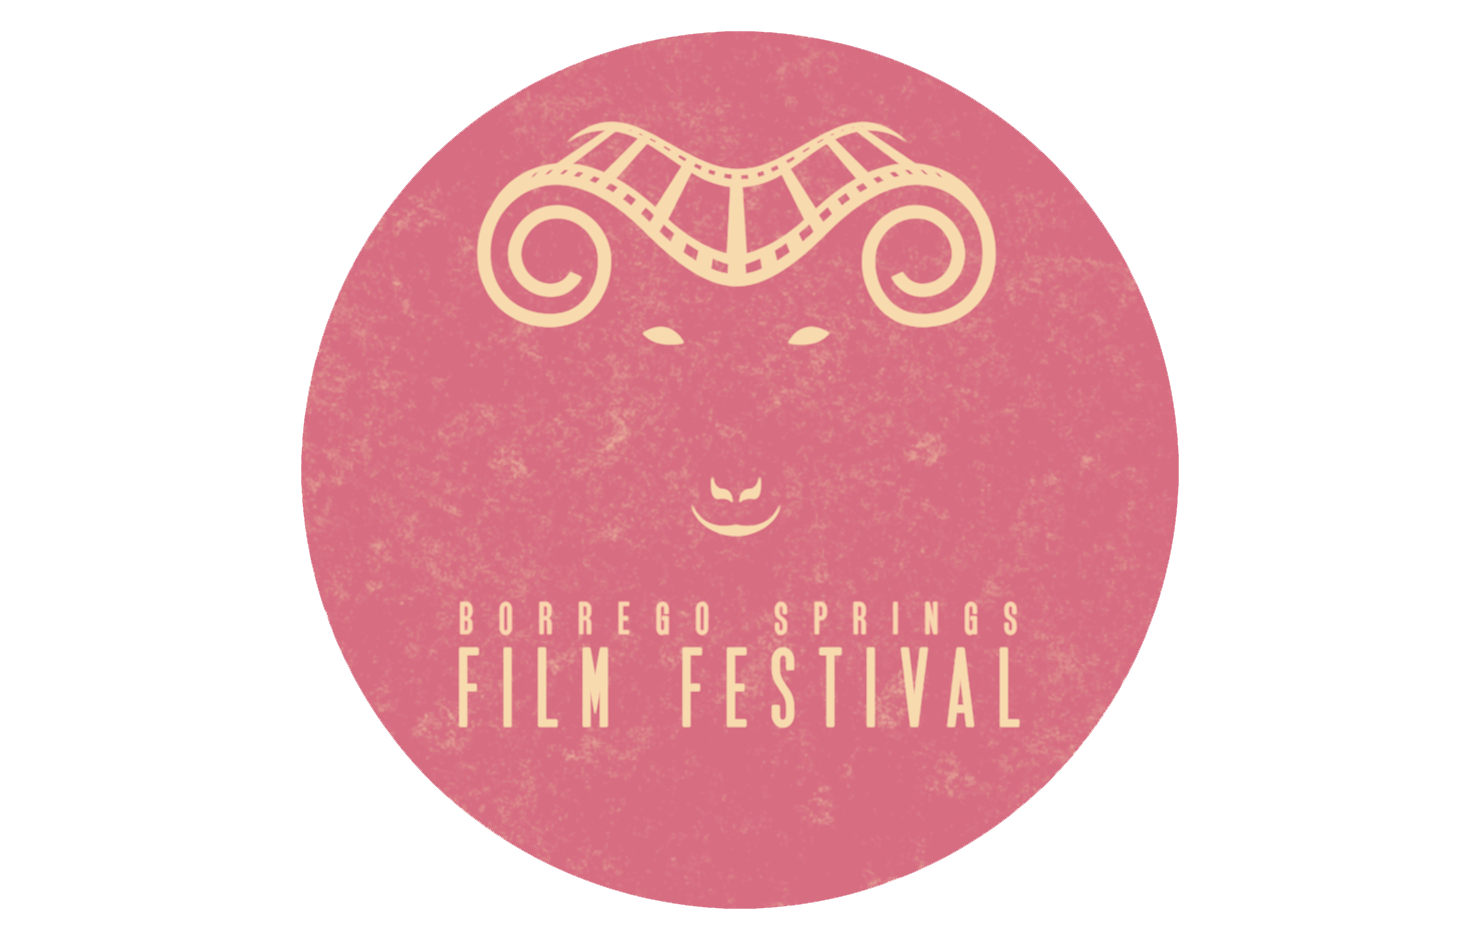 Borrego Springs Film Festival 2017